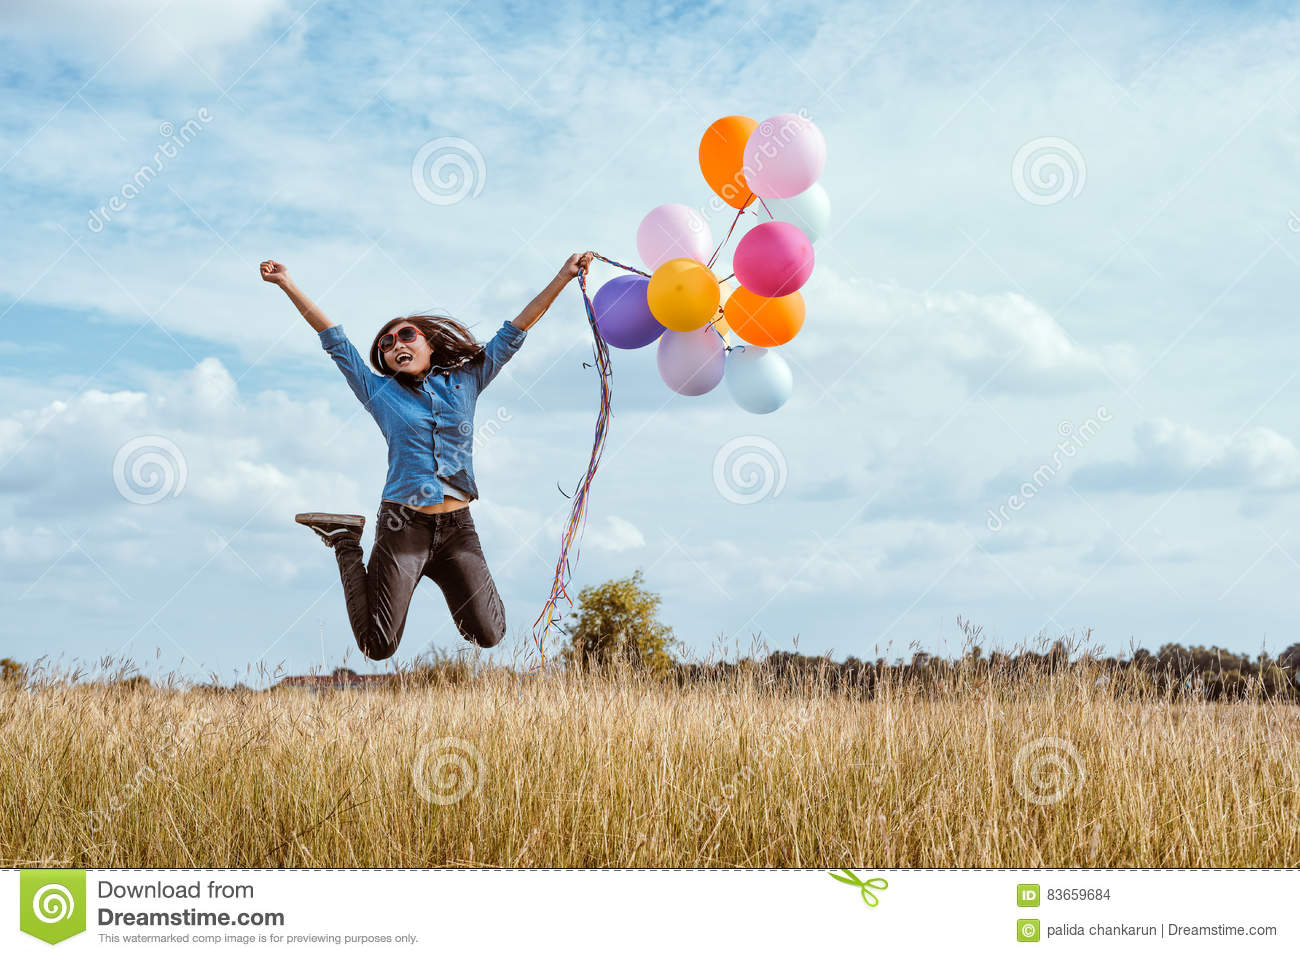 Woman jumping with colorful balloons in the meadow